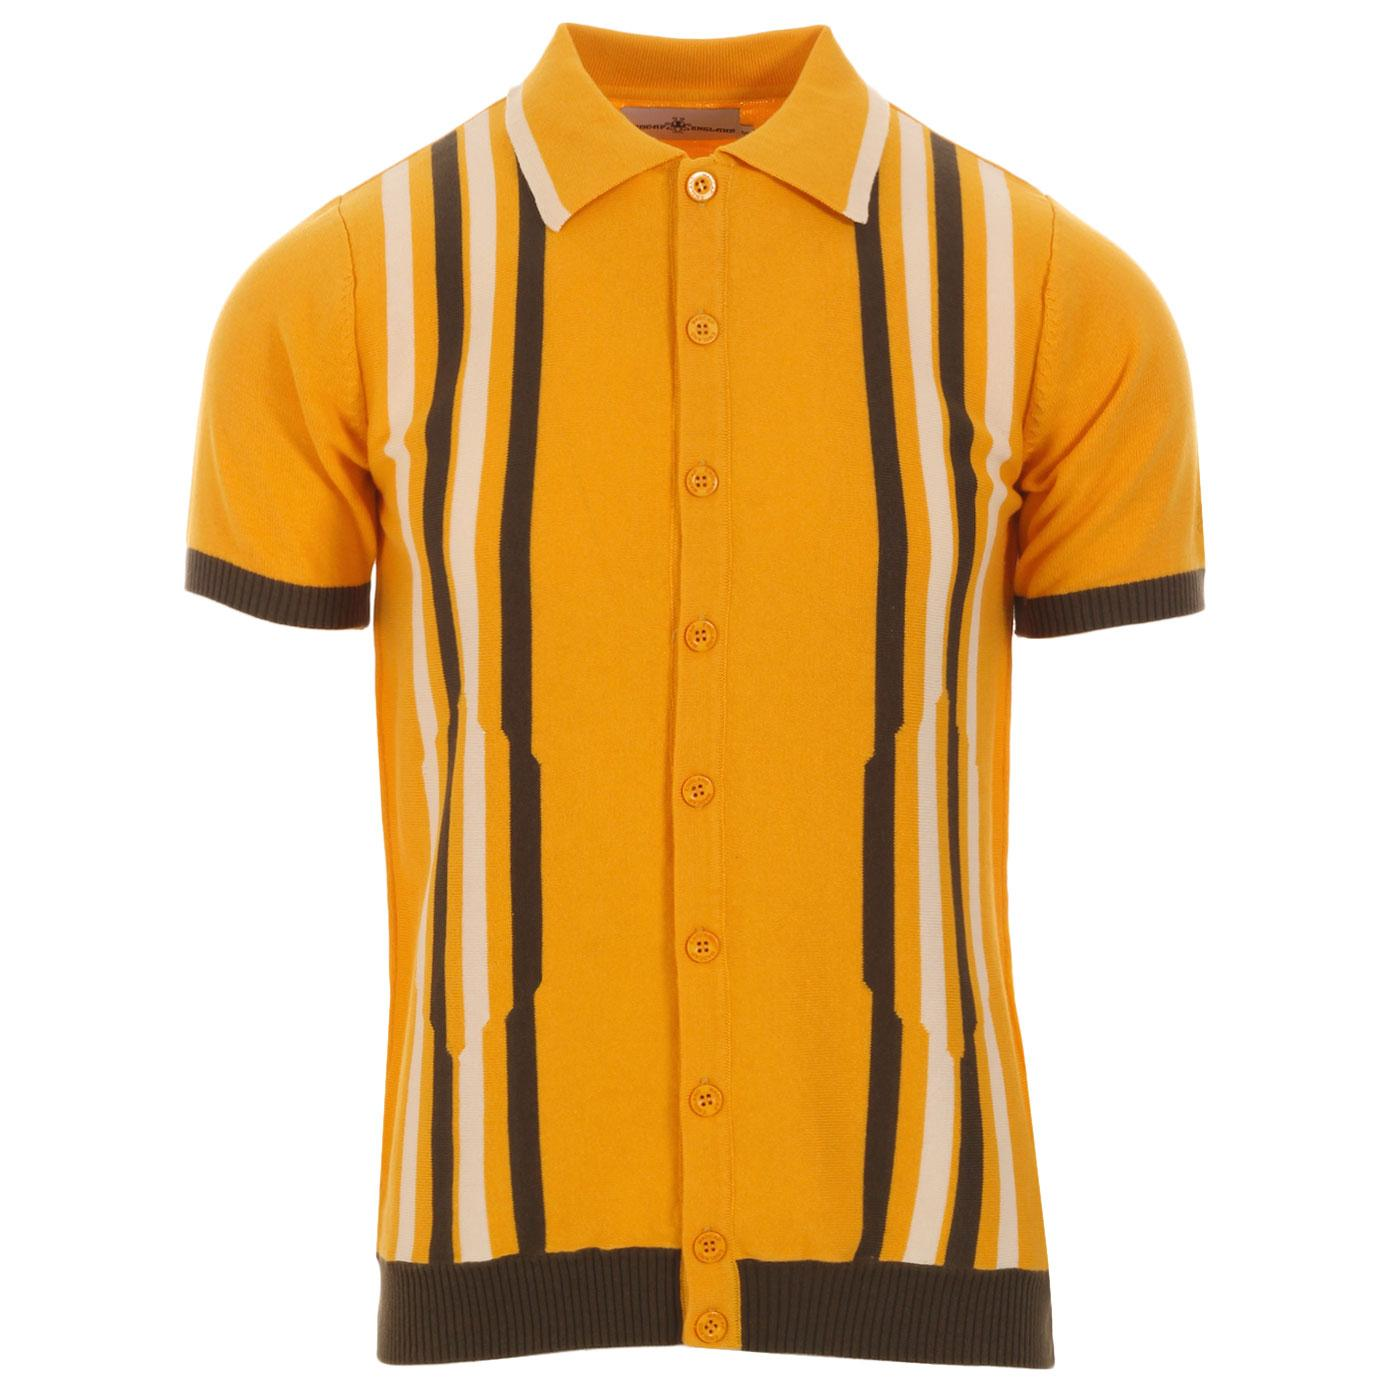 Madcap England Shockwave Men's 1960s Mod Abstract Stripe Knitted Button Through Polo Top in Amber Yellow